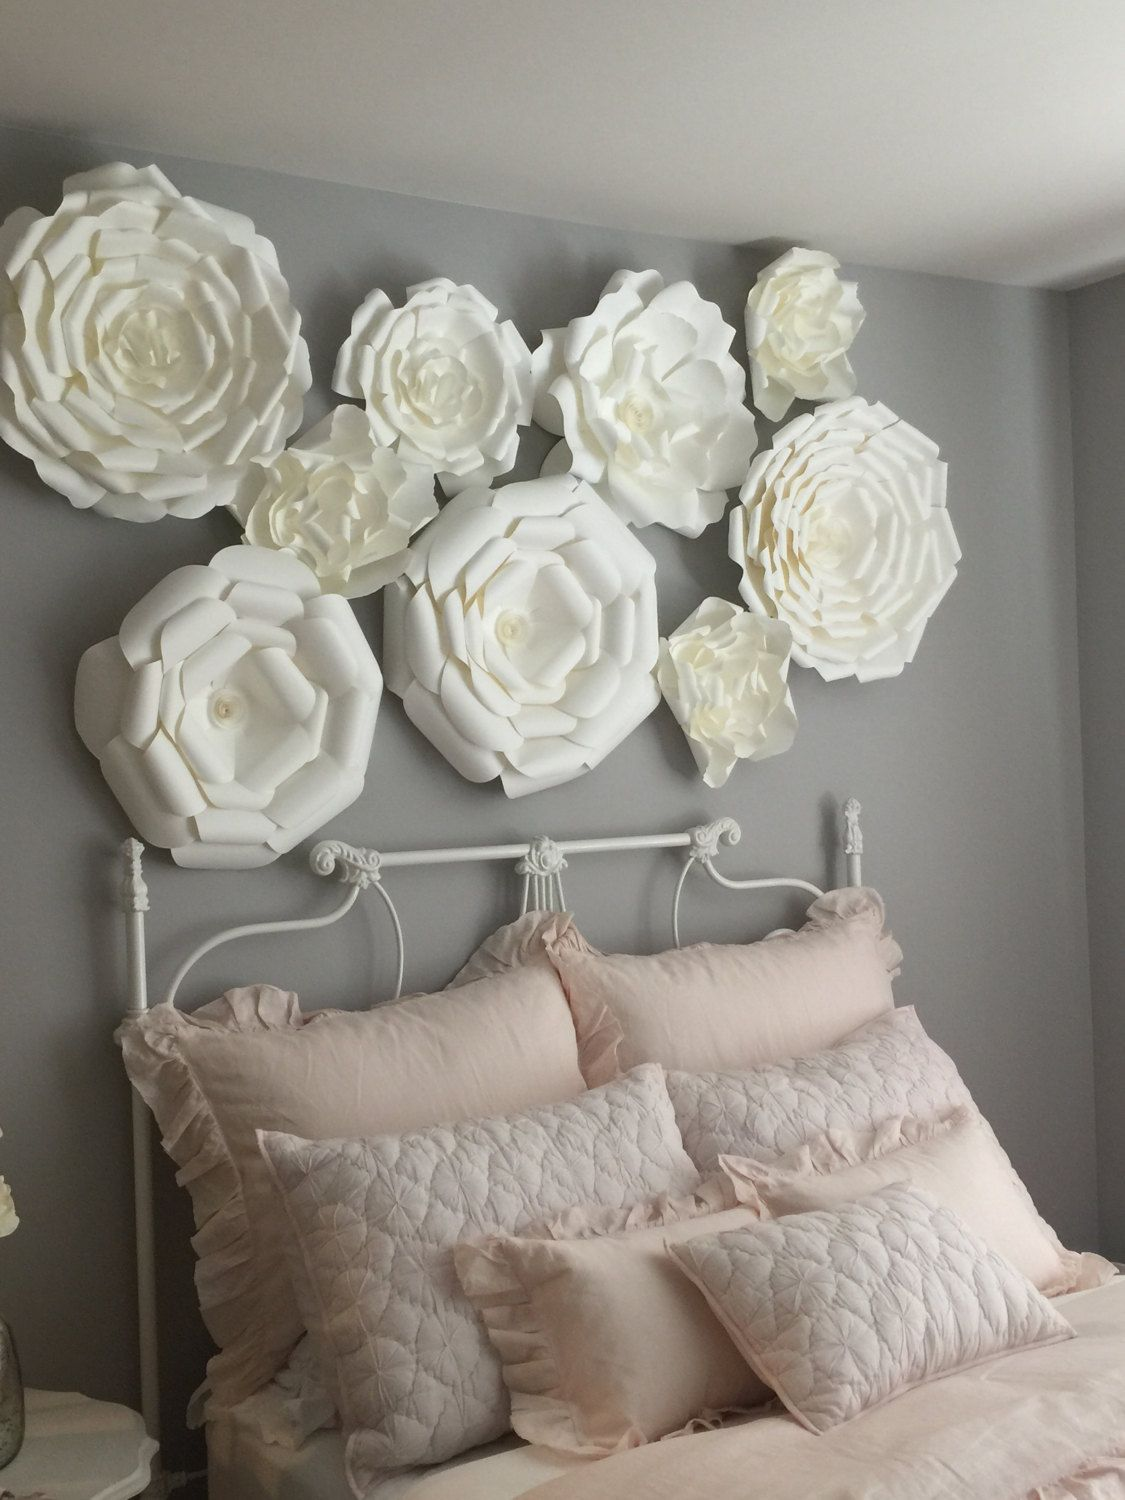 Paper Flower Backdrop Giant Flowers Wall Large Wedding Arch By CandyTreeBaltimore On Etsy